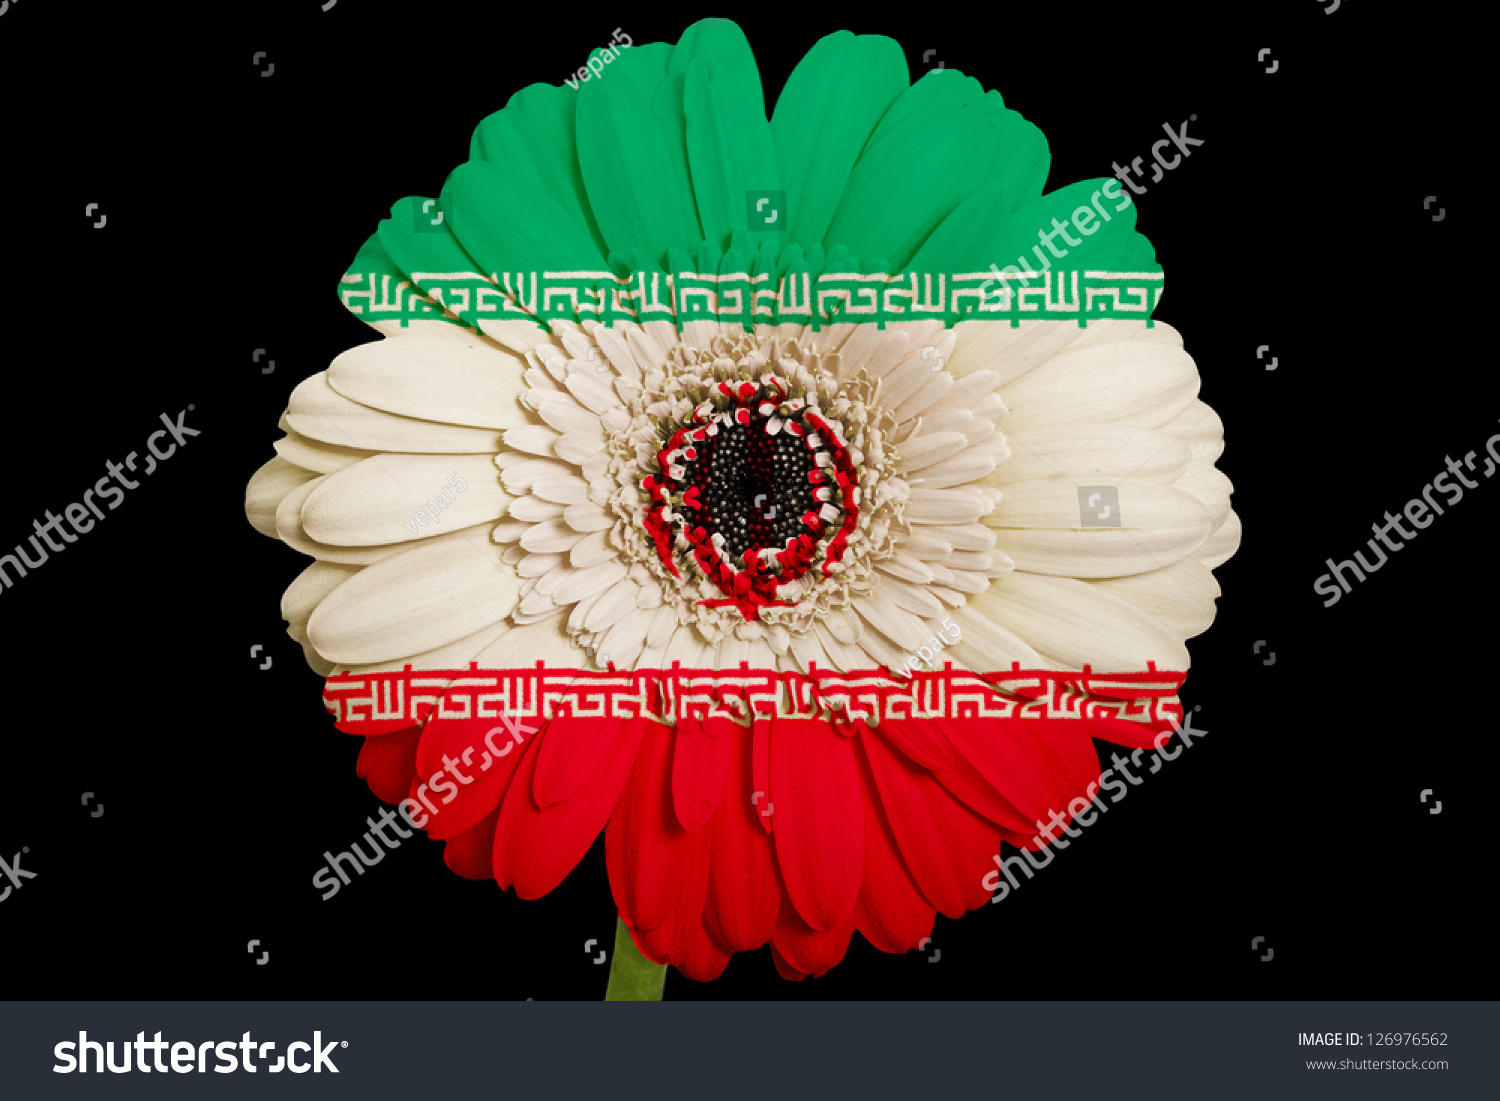 Gerbera daisy flower colors national flag stock photo 126976562 gerbera daisy flower in colors national flag of iran on black background as concept and symbol buycottarizona Choice Image